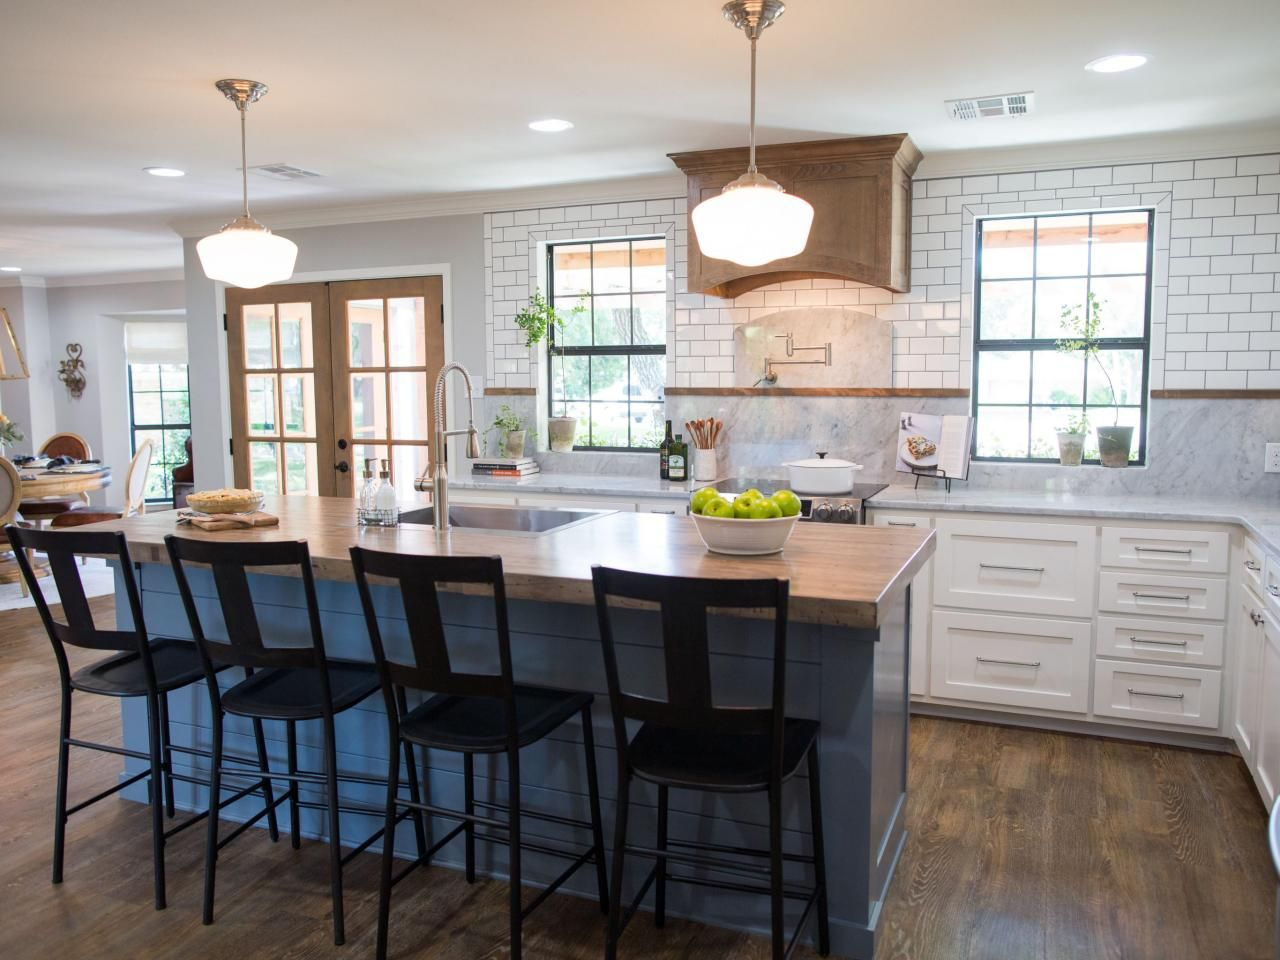 photos hgtv 39 s fixer upper with chip and joanna gaines hgtv wood exhaust vent concrete. Black Bedroom Furniture Sets. Home Design Ideas